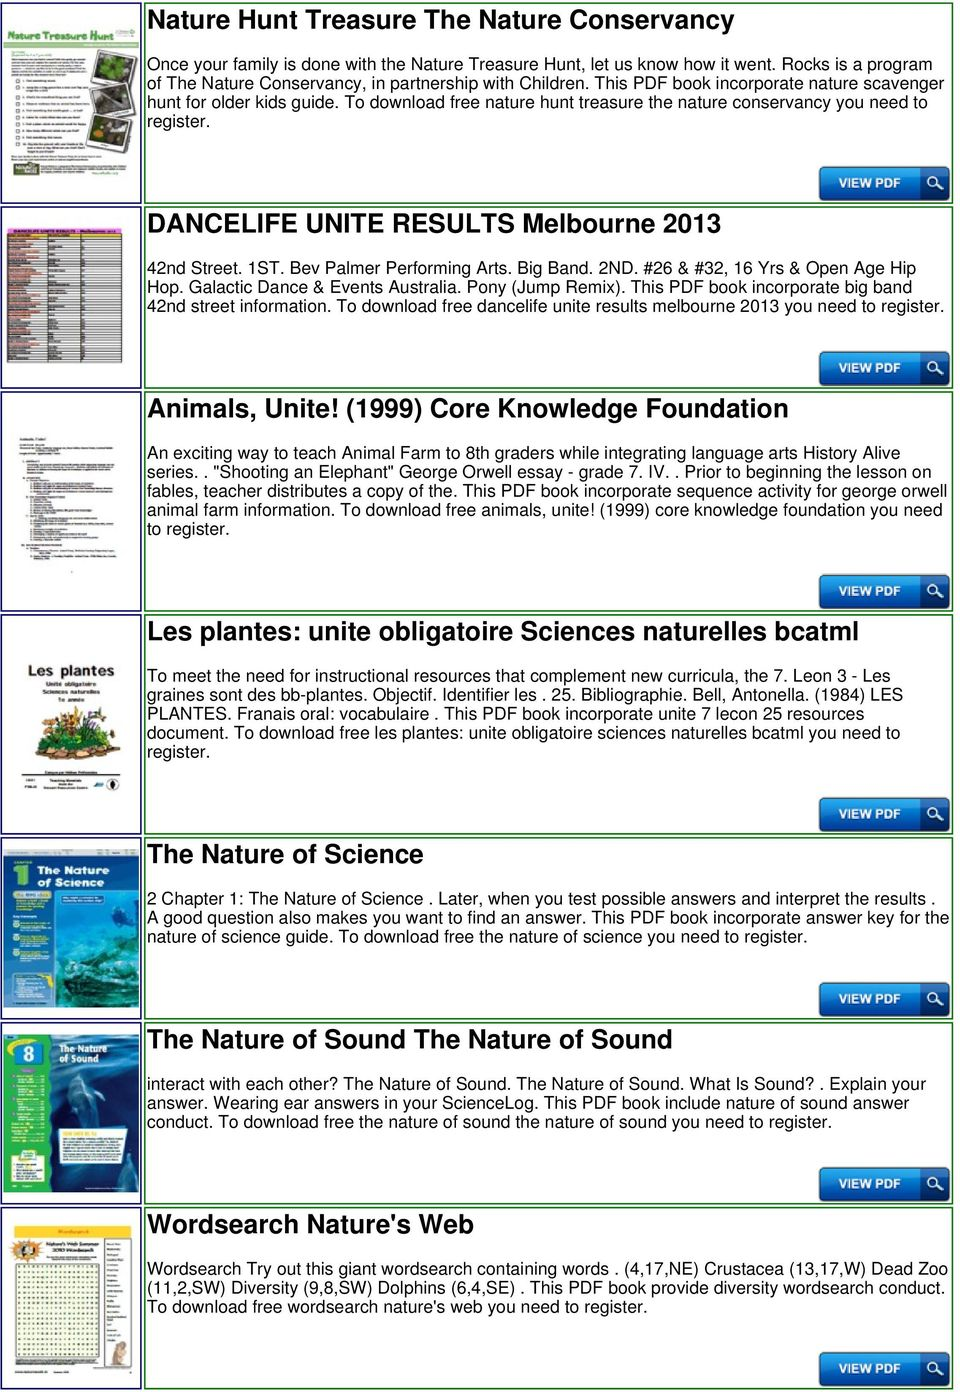 History alive study guide for ebook begin reading your ebook digital editions array unite 3 vive la nature partie 1 pdf rh docplayer net fandeluxe Images